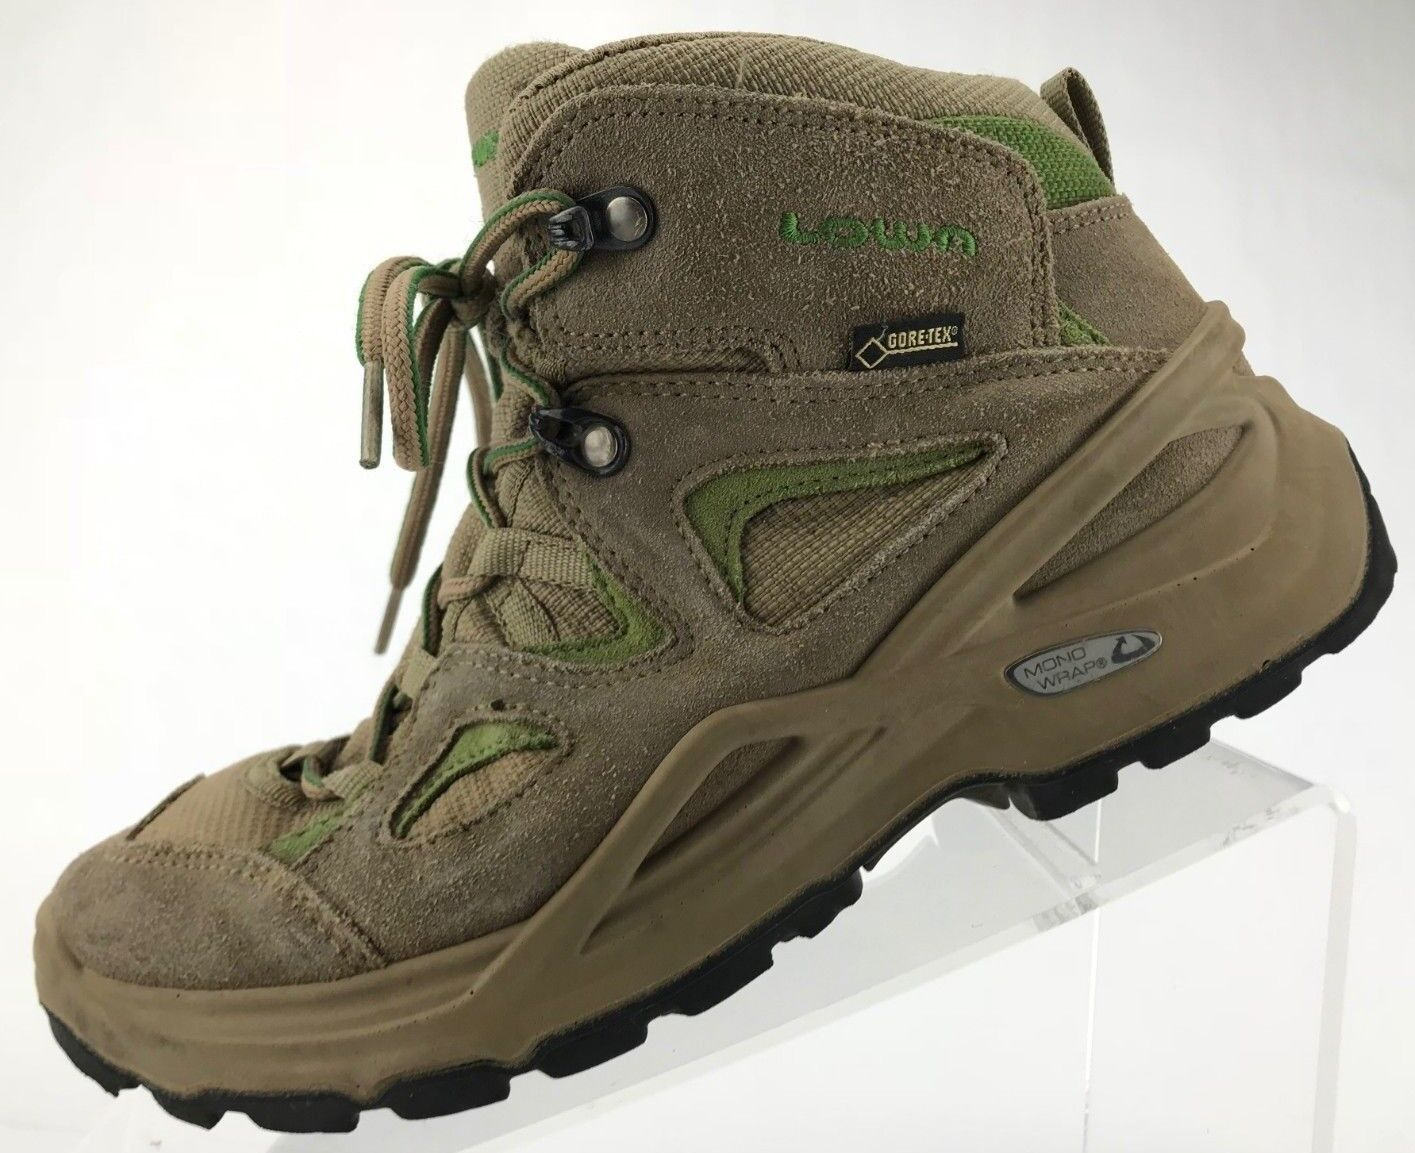 Lowa Hiking Boots - Suede Gore-Tex All Terrain Trail Ankle shoes Womens 6 Taupe